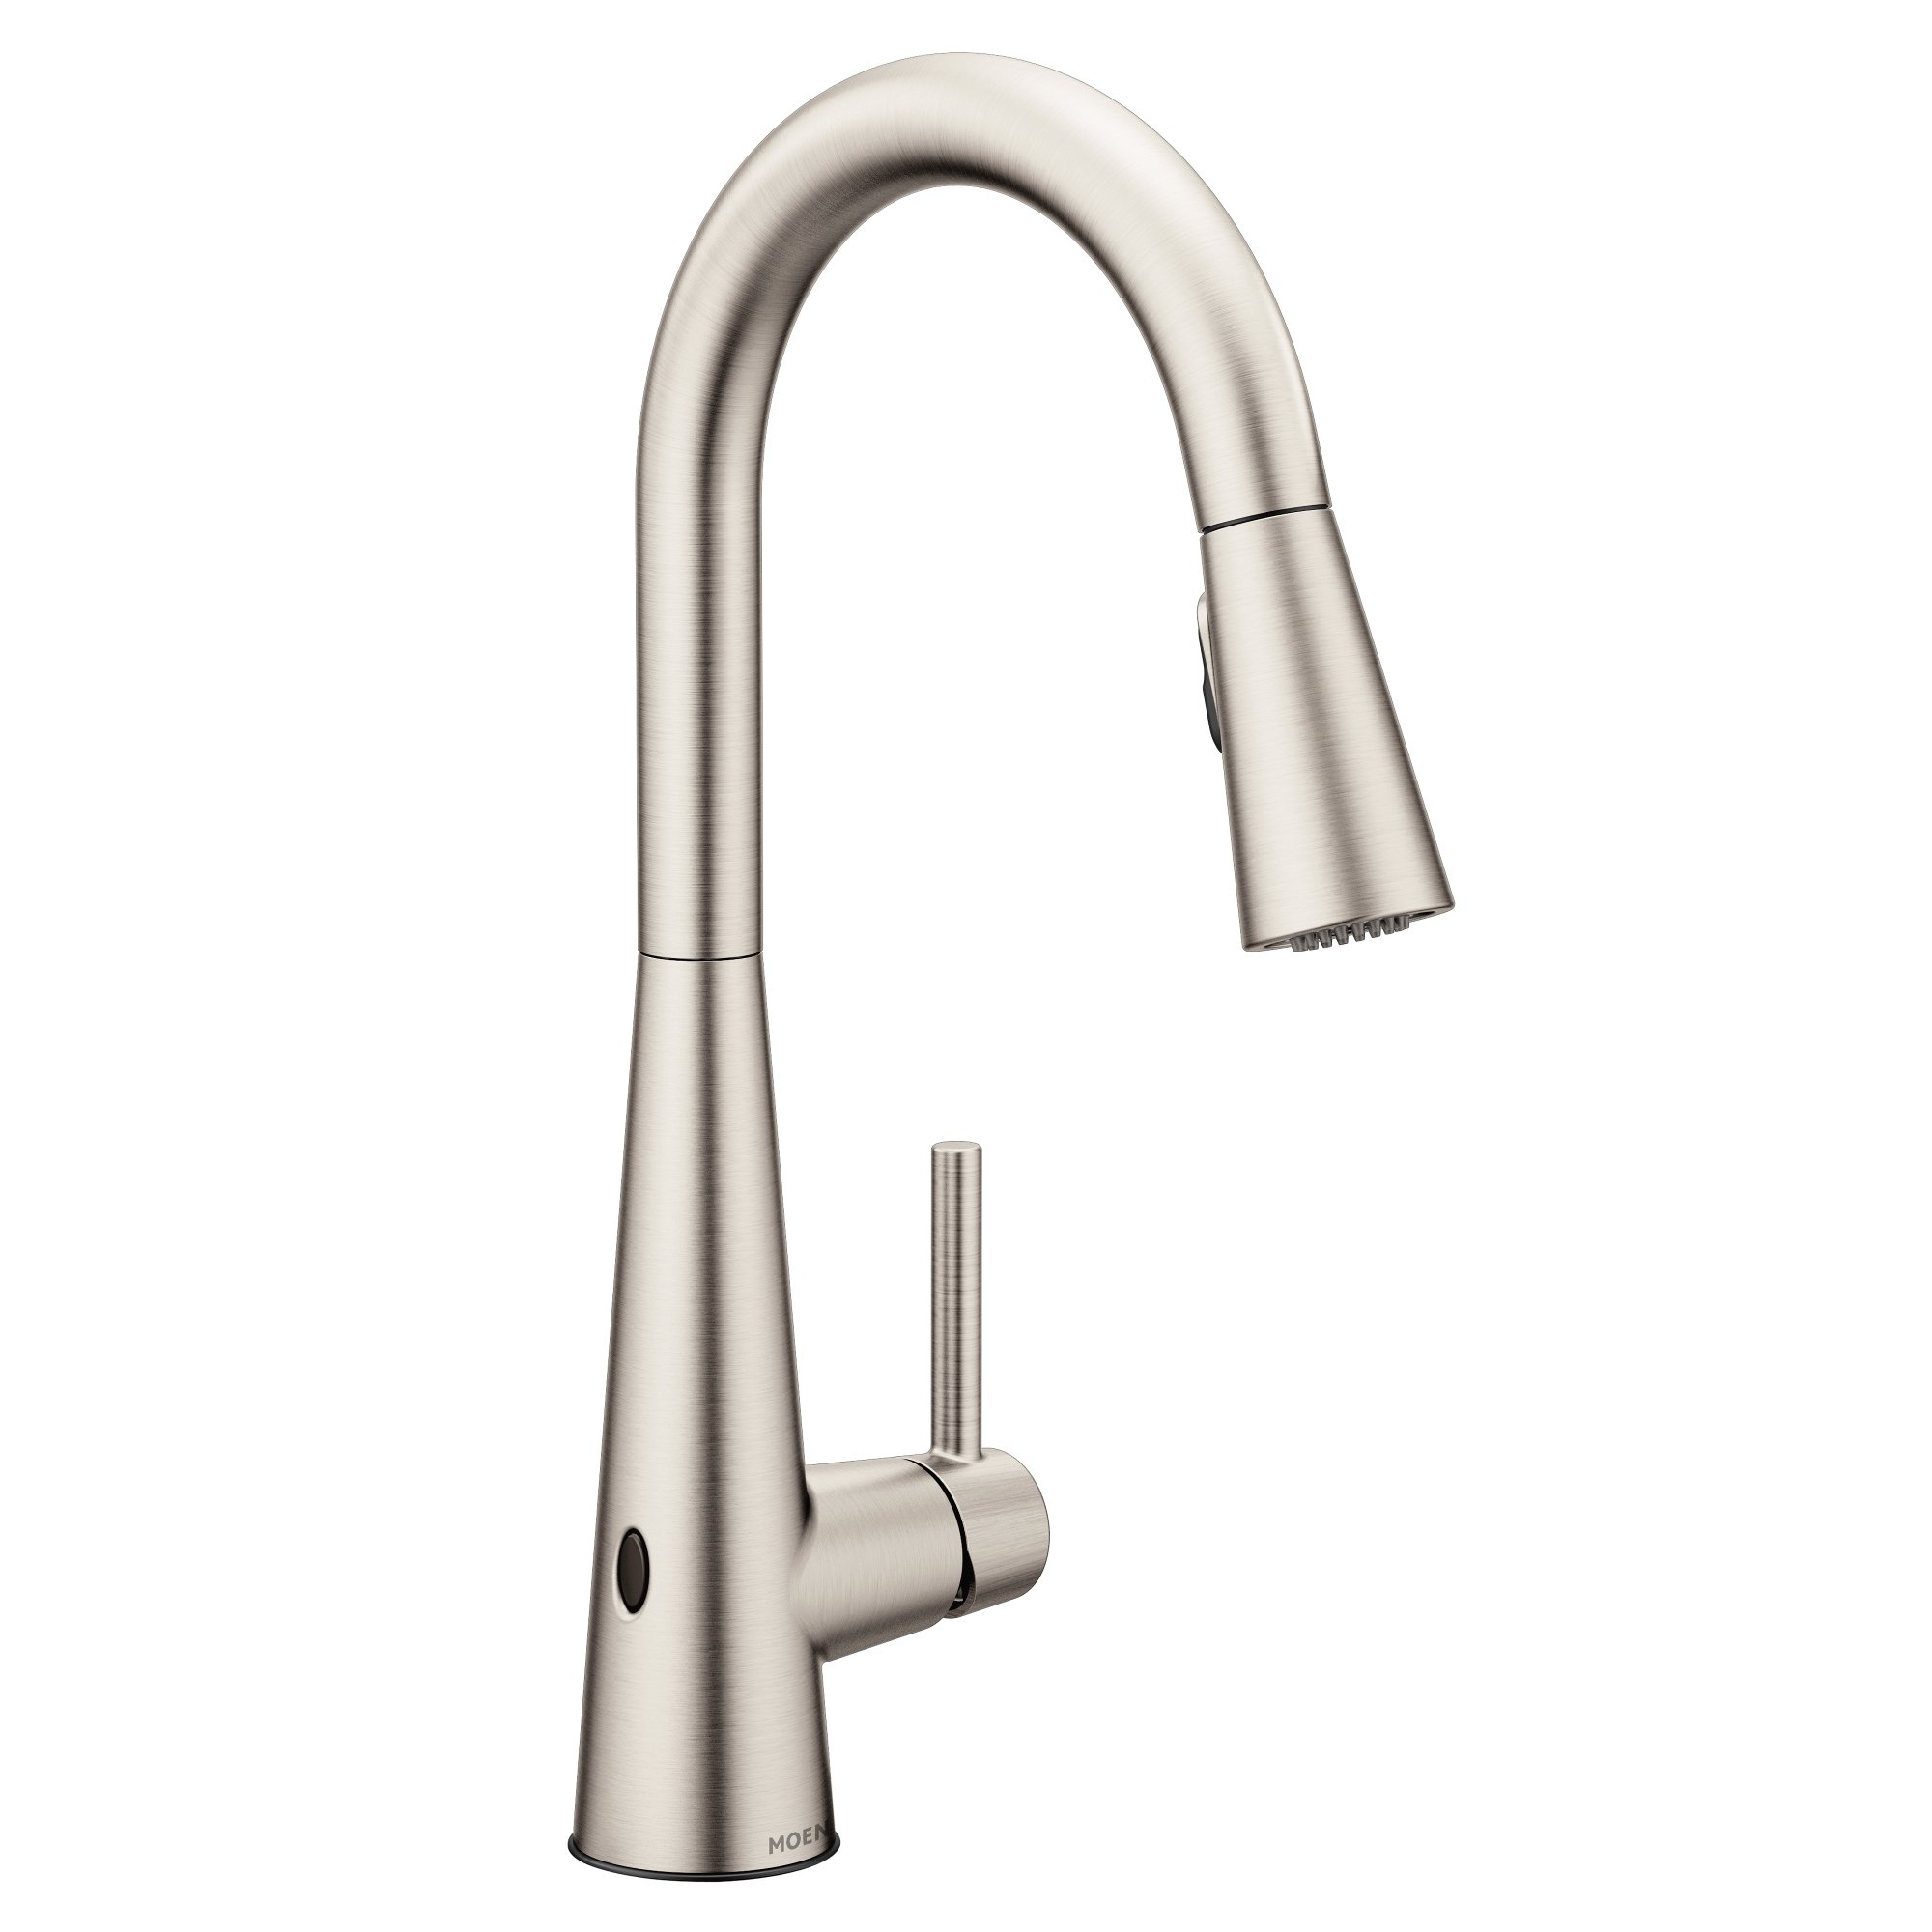 Moen 7864EWSRS Sleek Reflex Motionsense Wave Sensor Touchless One-Handle High Arc Pulldown Modern Kitchen Faucet Featuring Power Clean, Spot Resist Stainless by Moen